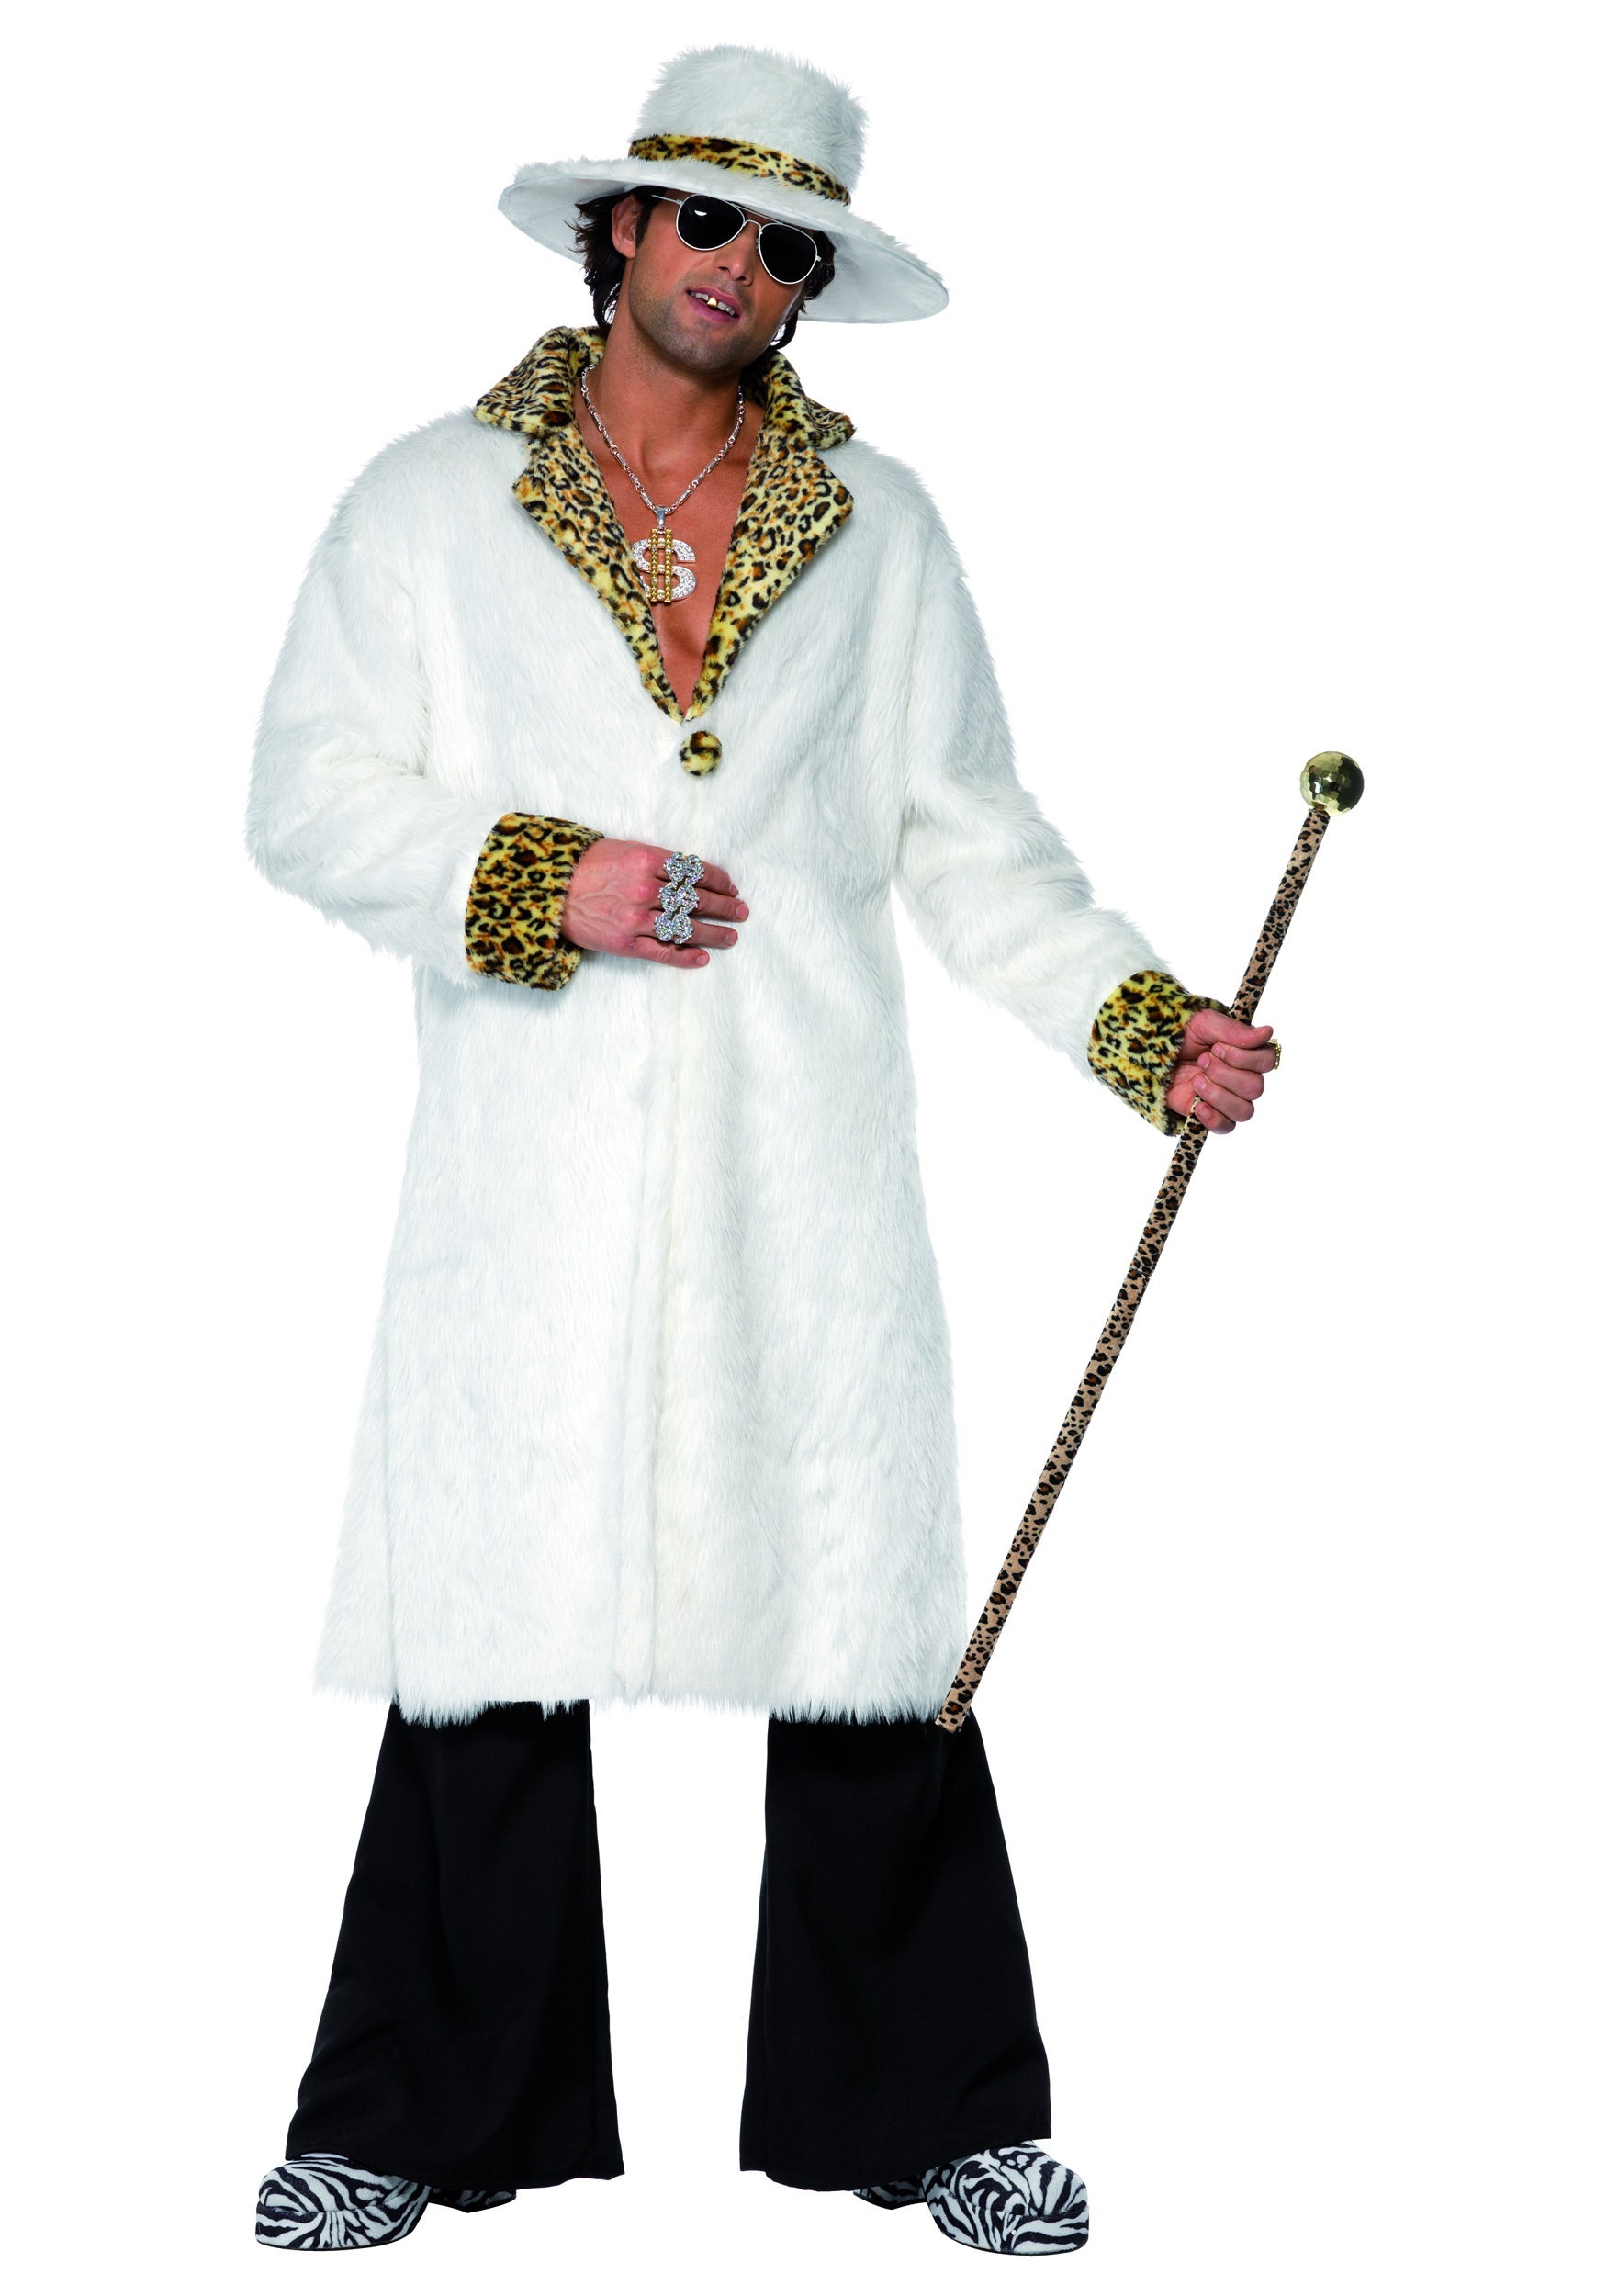 Mens Hustla Pimp Costume  sc 1 st  Halloween Costume & Mens Hustla Pimp Costume - Mens Pimp Halloween Costume